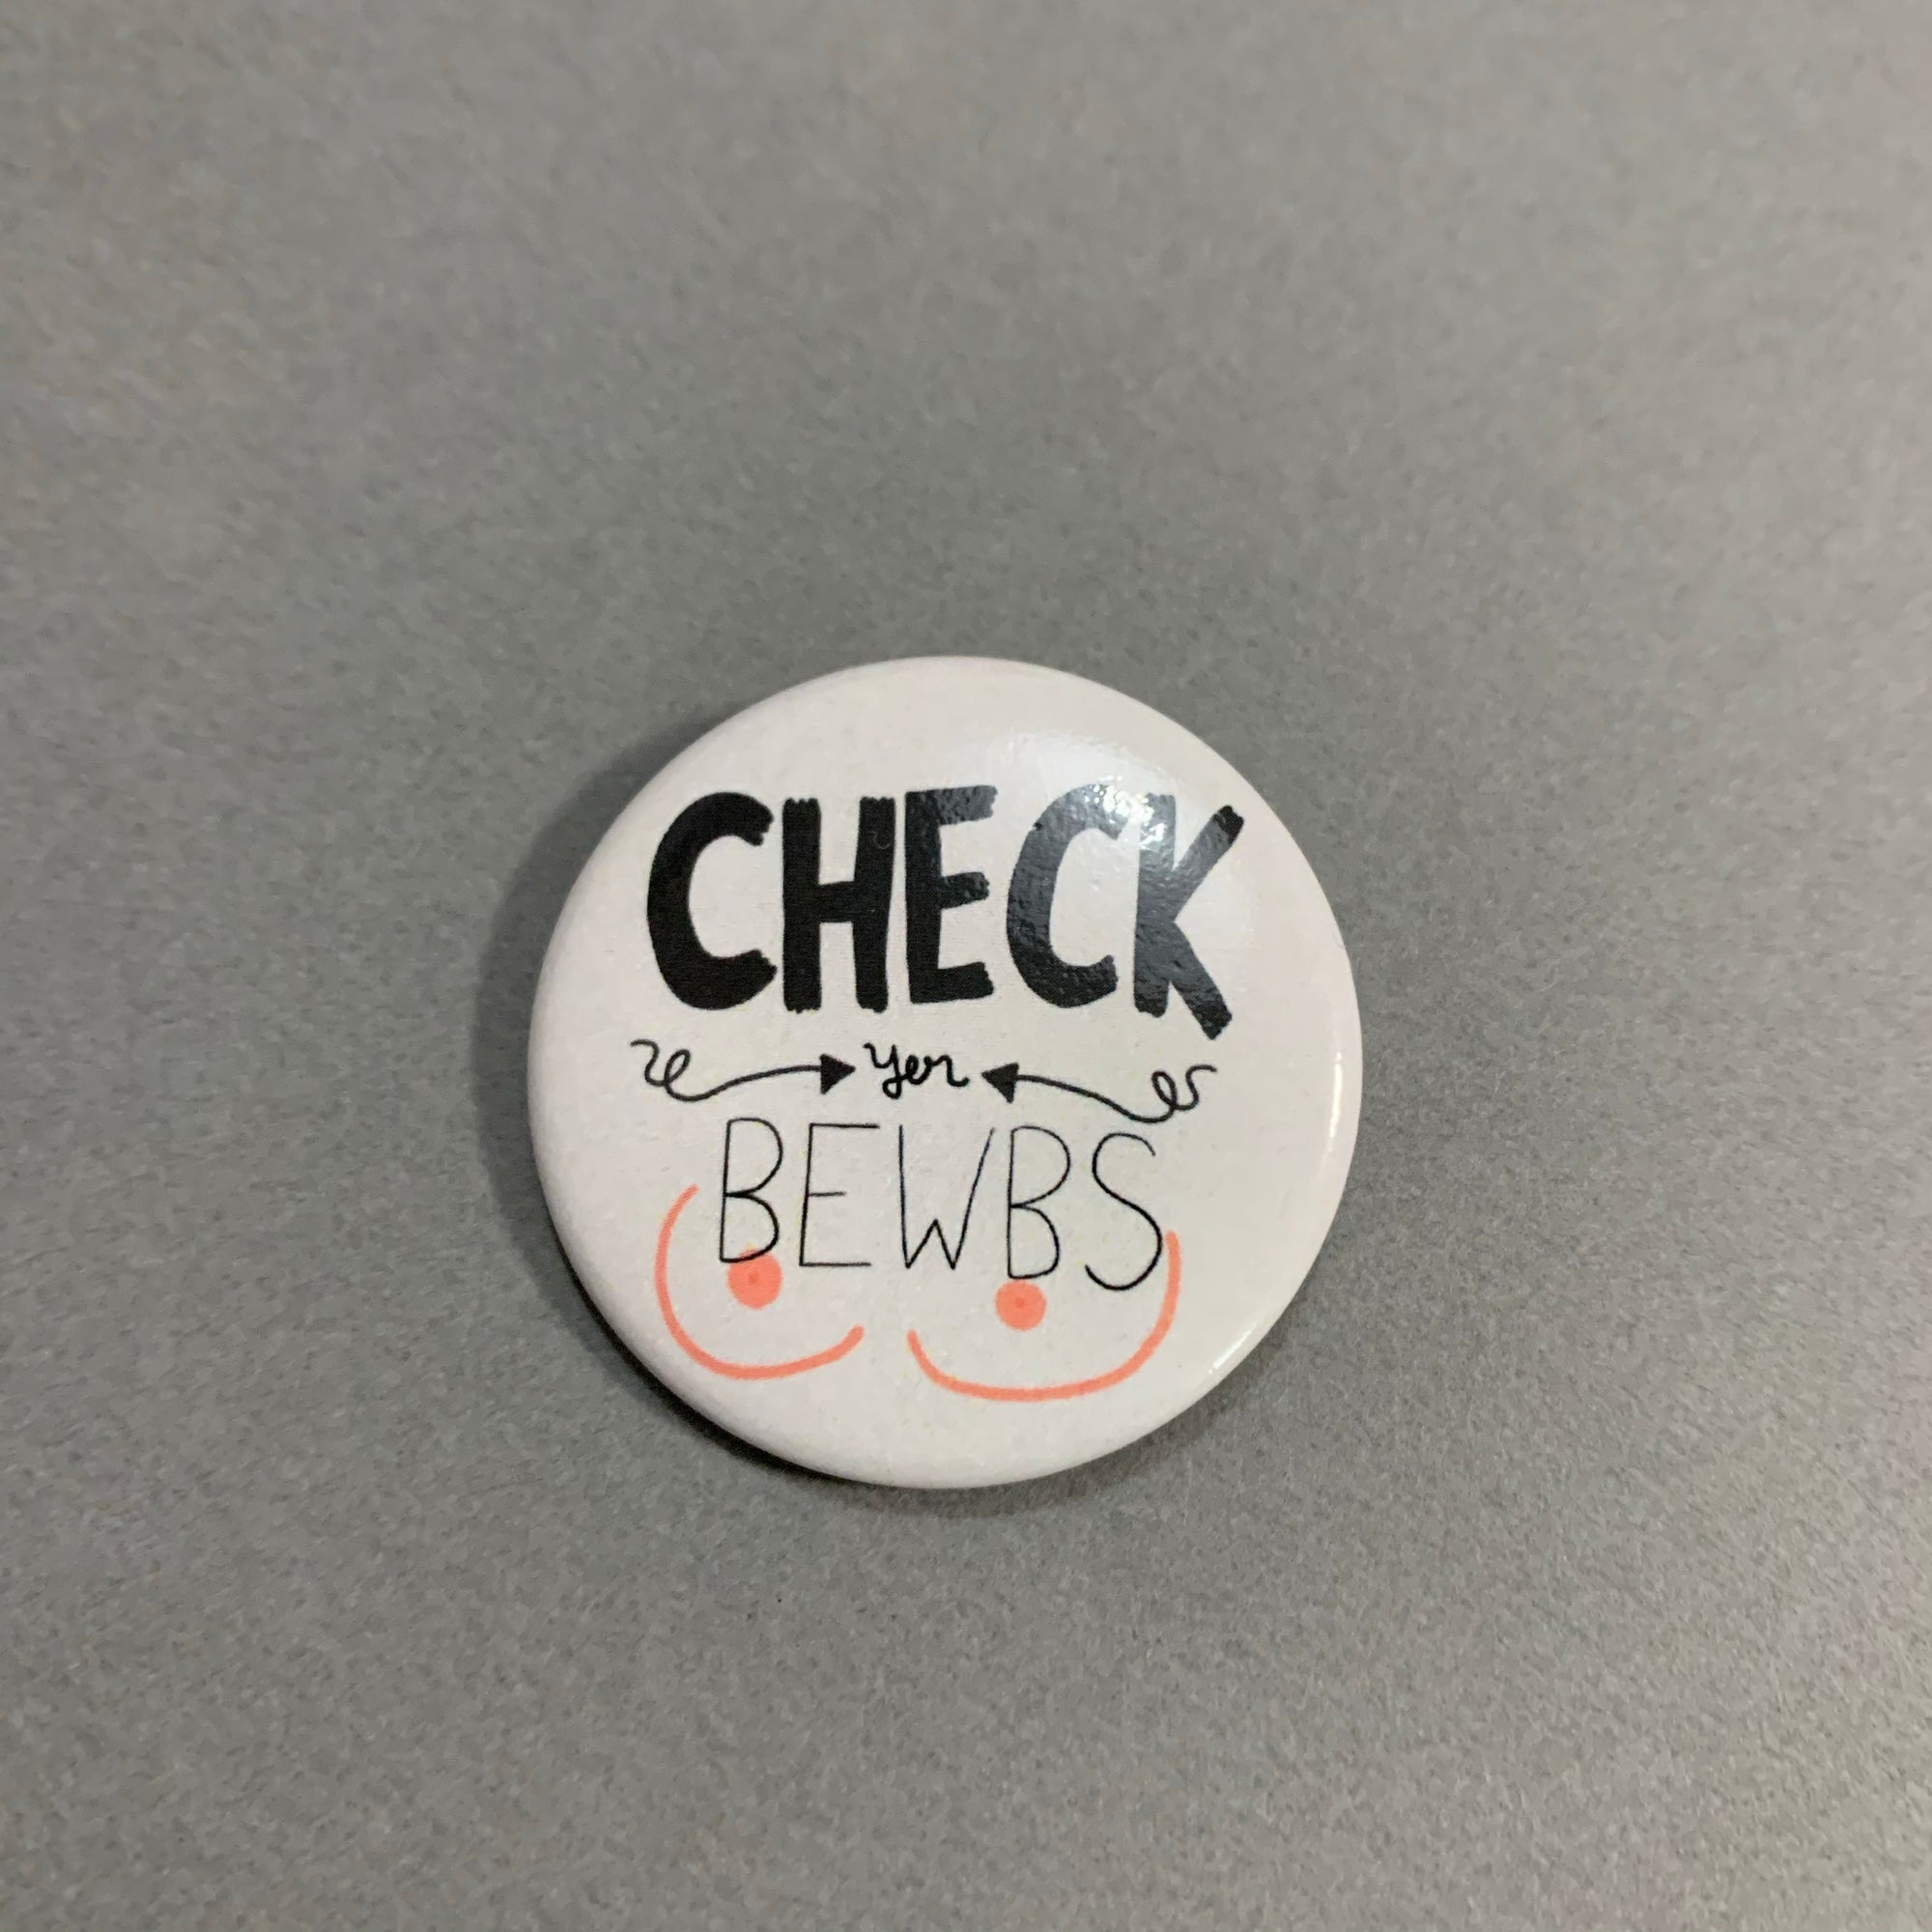 Check Yer Bewbs Button